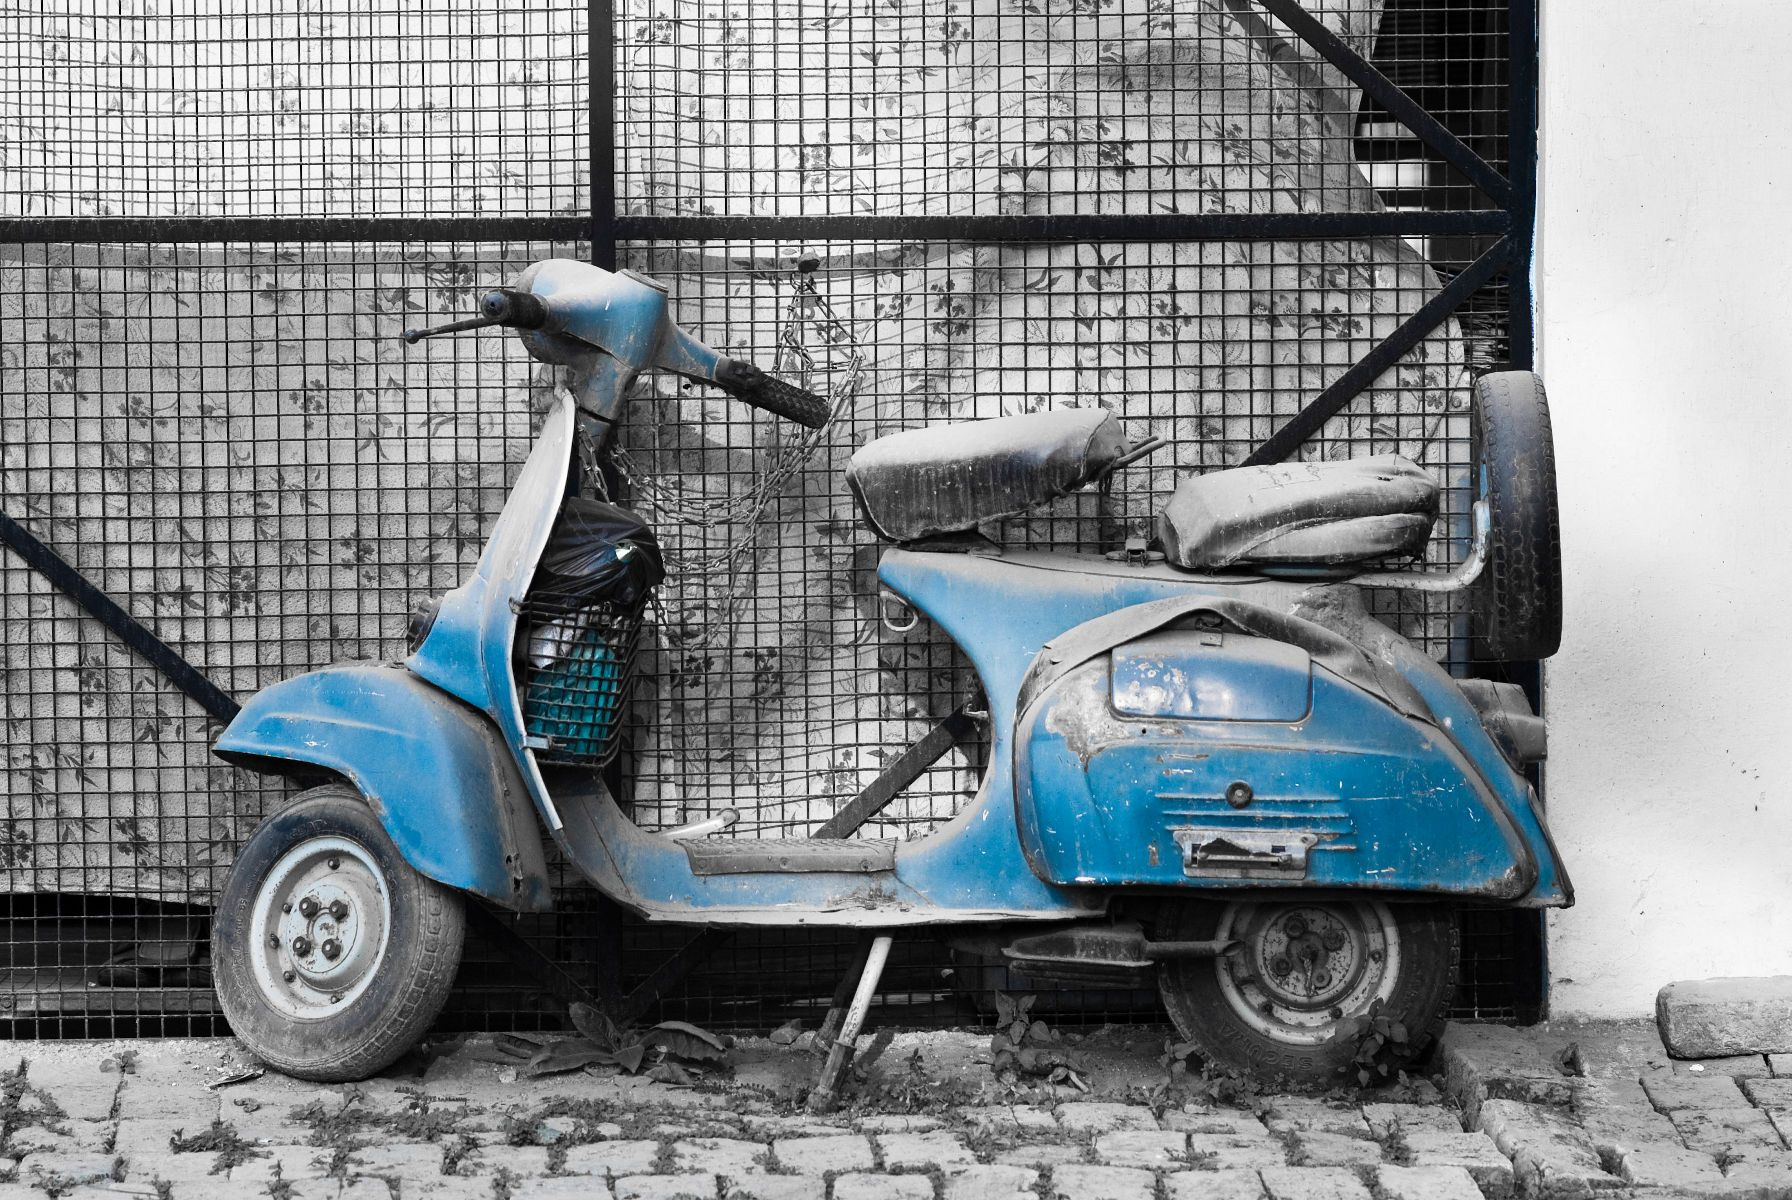 old scooter - Google Search | Scooters | Pinterest | Scooters